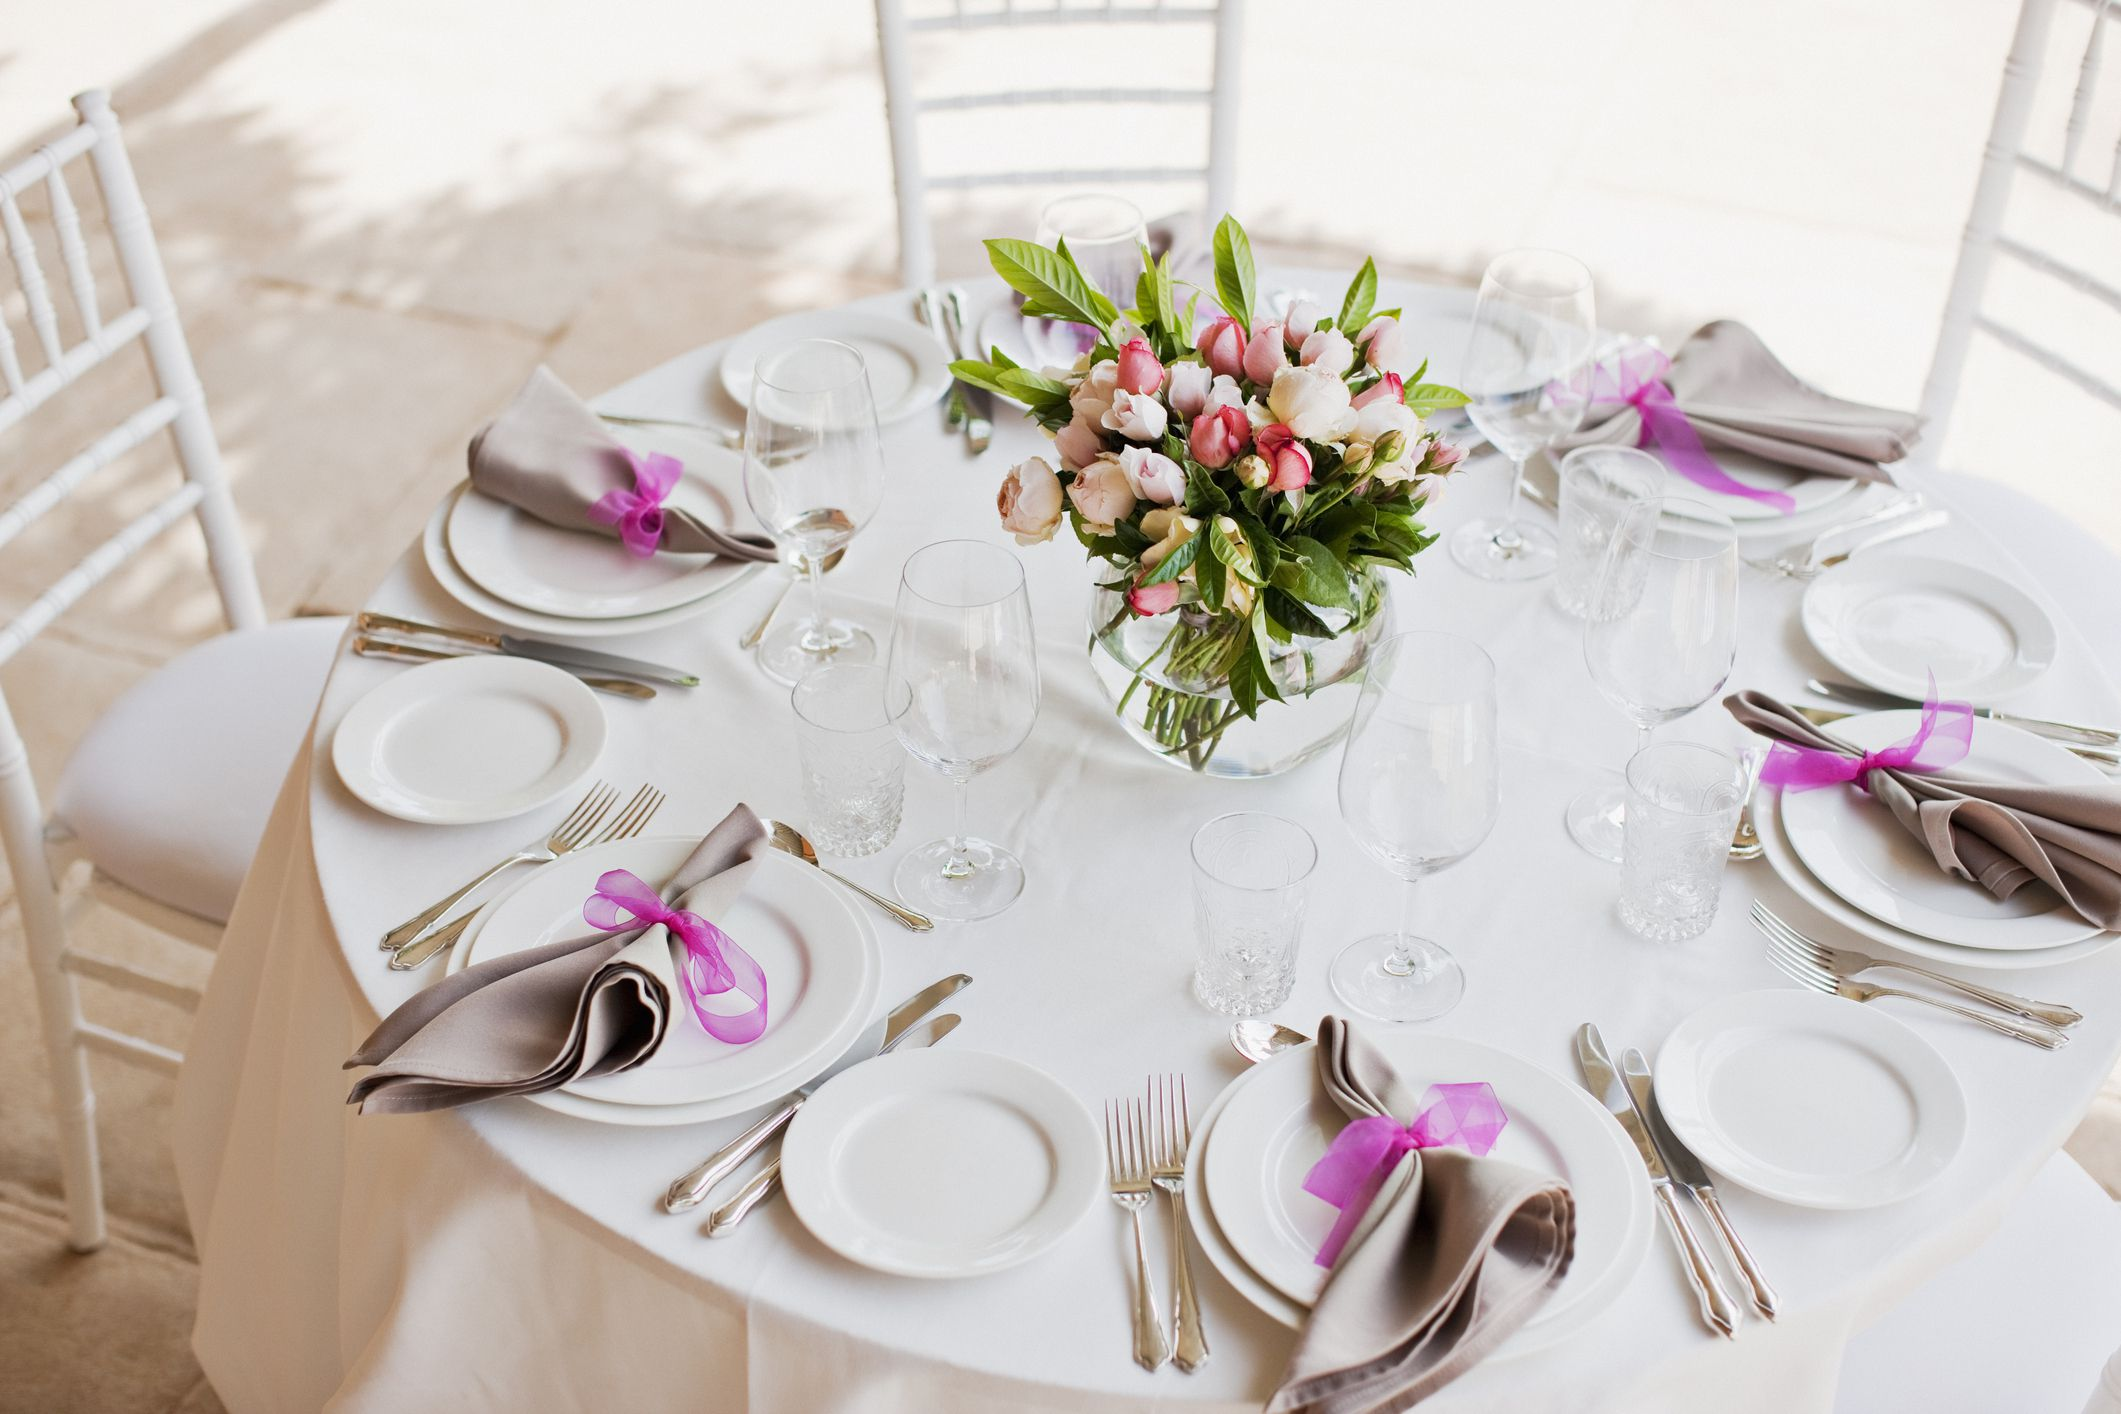 Ideas for Inexpensive Wedding Flowers and Centerpieces